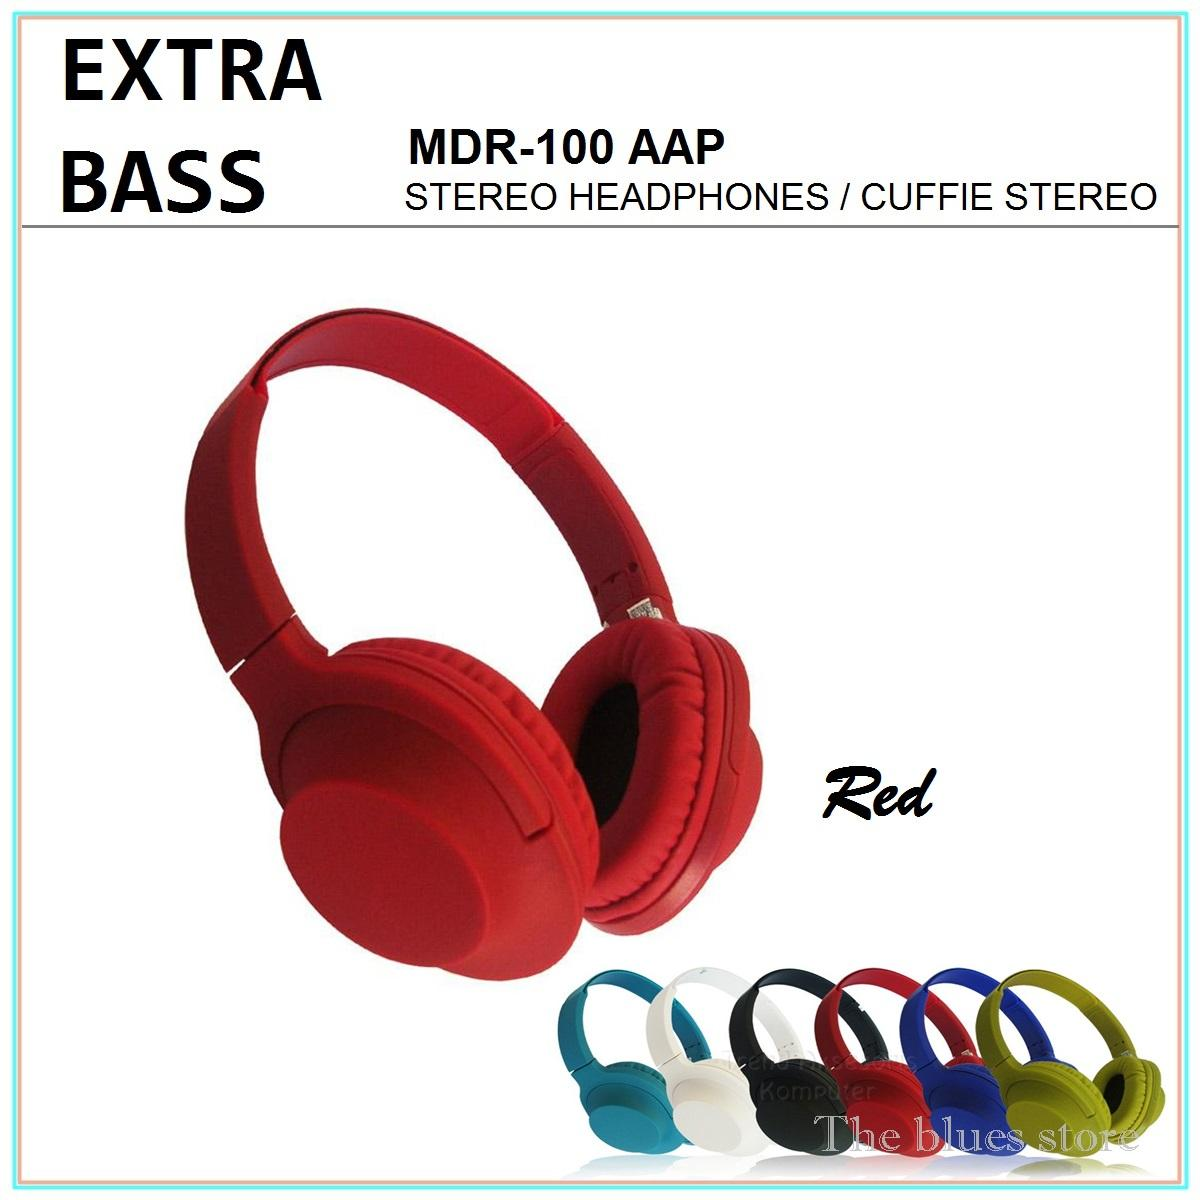 Extra Bass MDR-100 AAP Headphones Stereo Cuffie